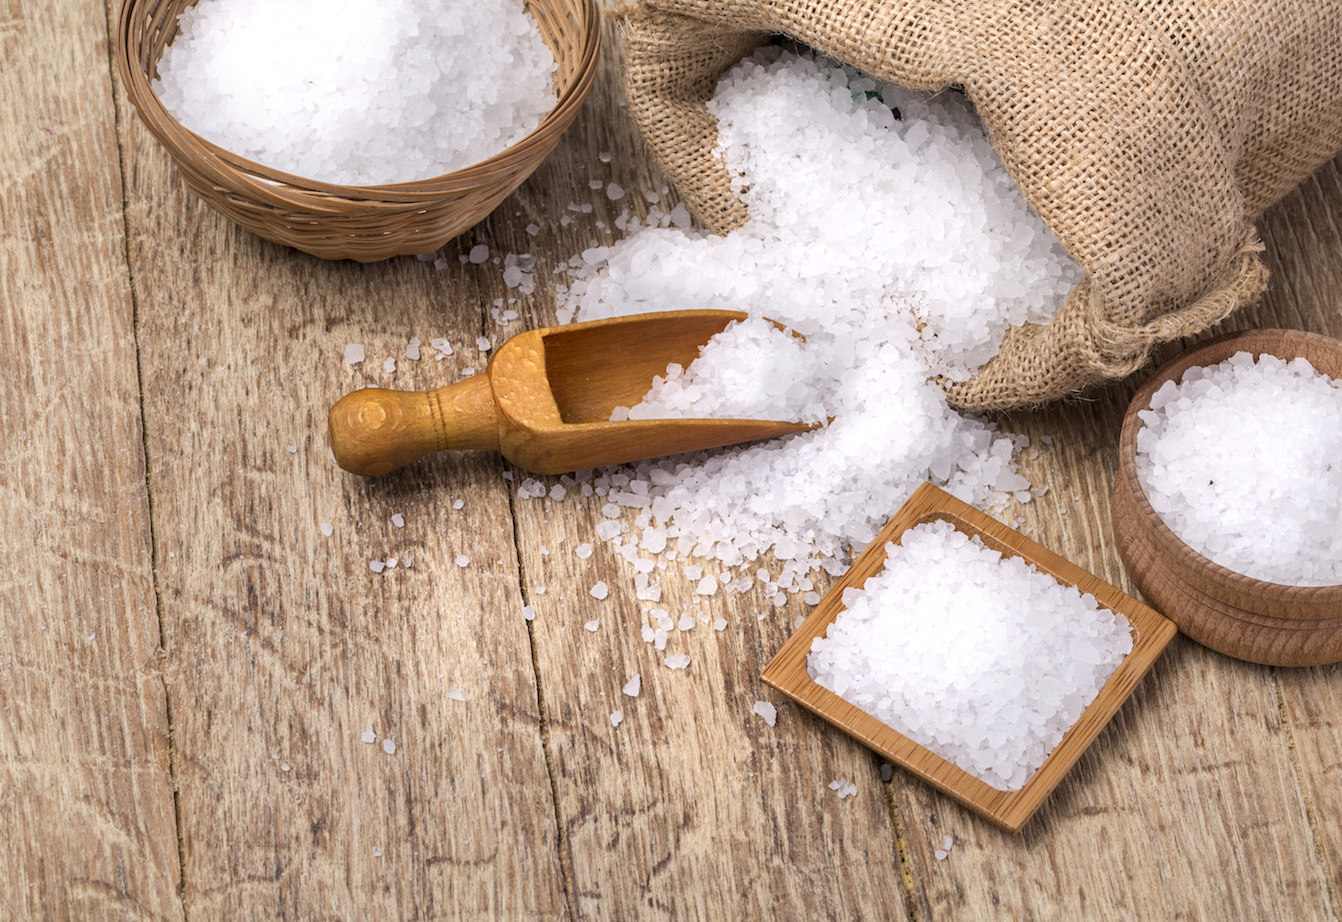 According to the Centers for Disease Control (CDC), Americans have a salt problem and consume far more sodium than we need.